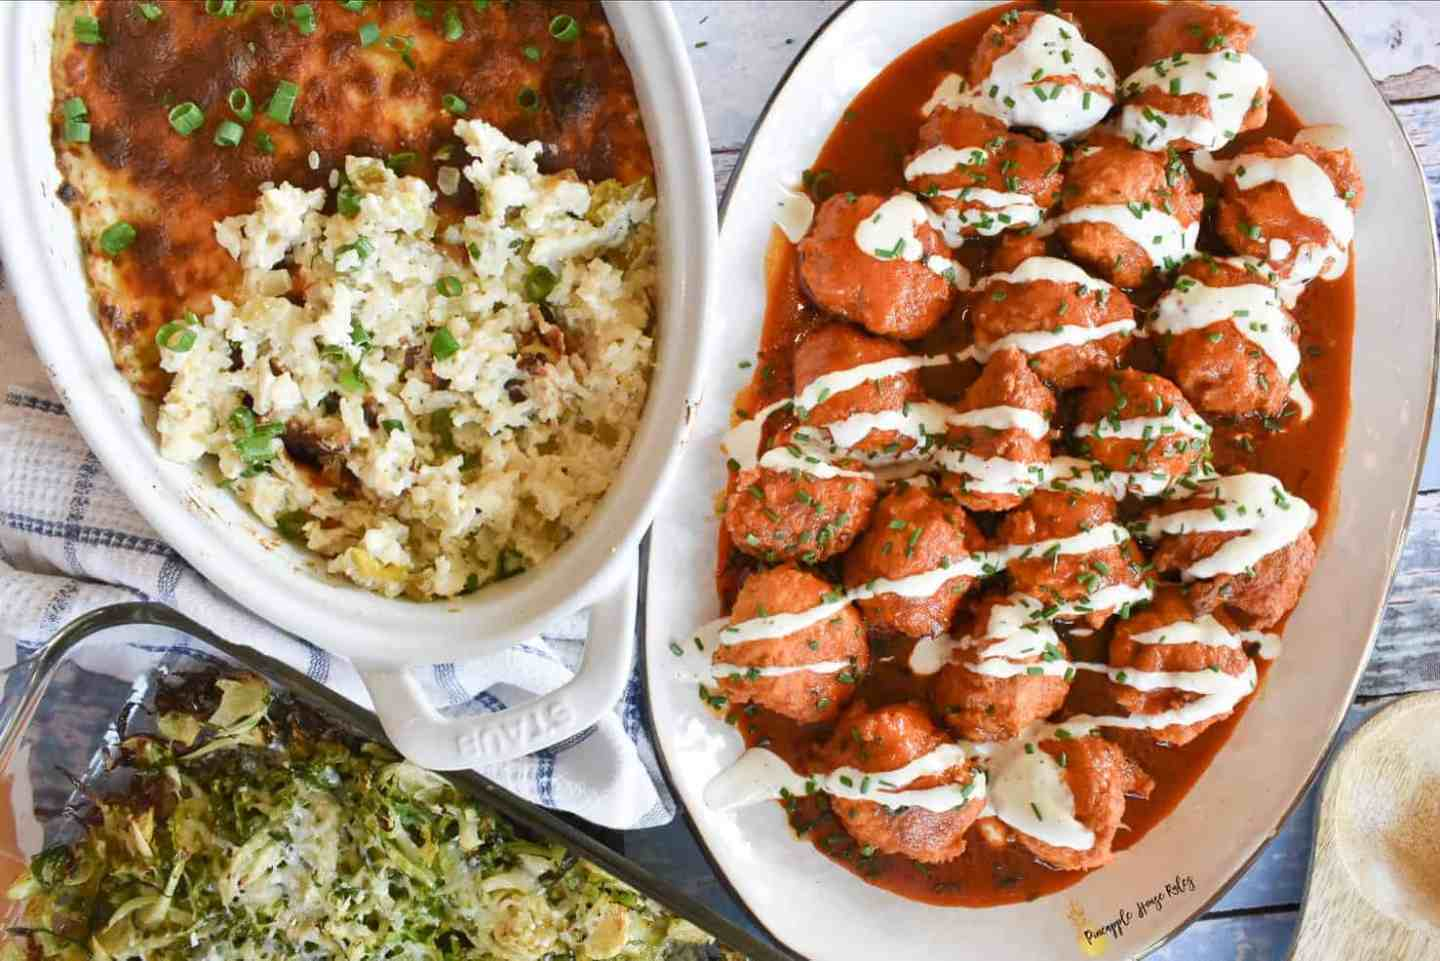 Buffalo-Chicken-Meatballs-Corrales-Casserole-Roasted-Brussels-Sprouts-1